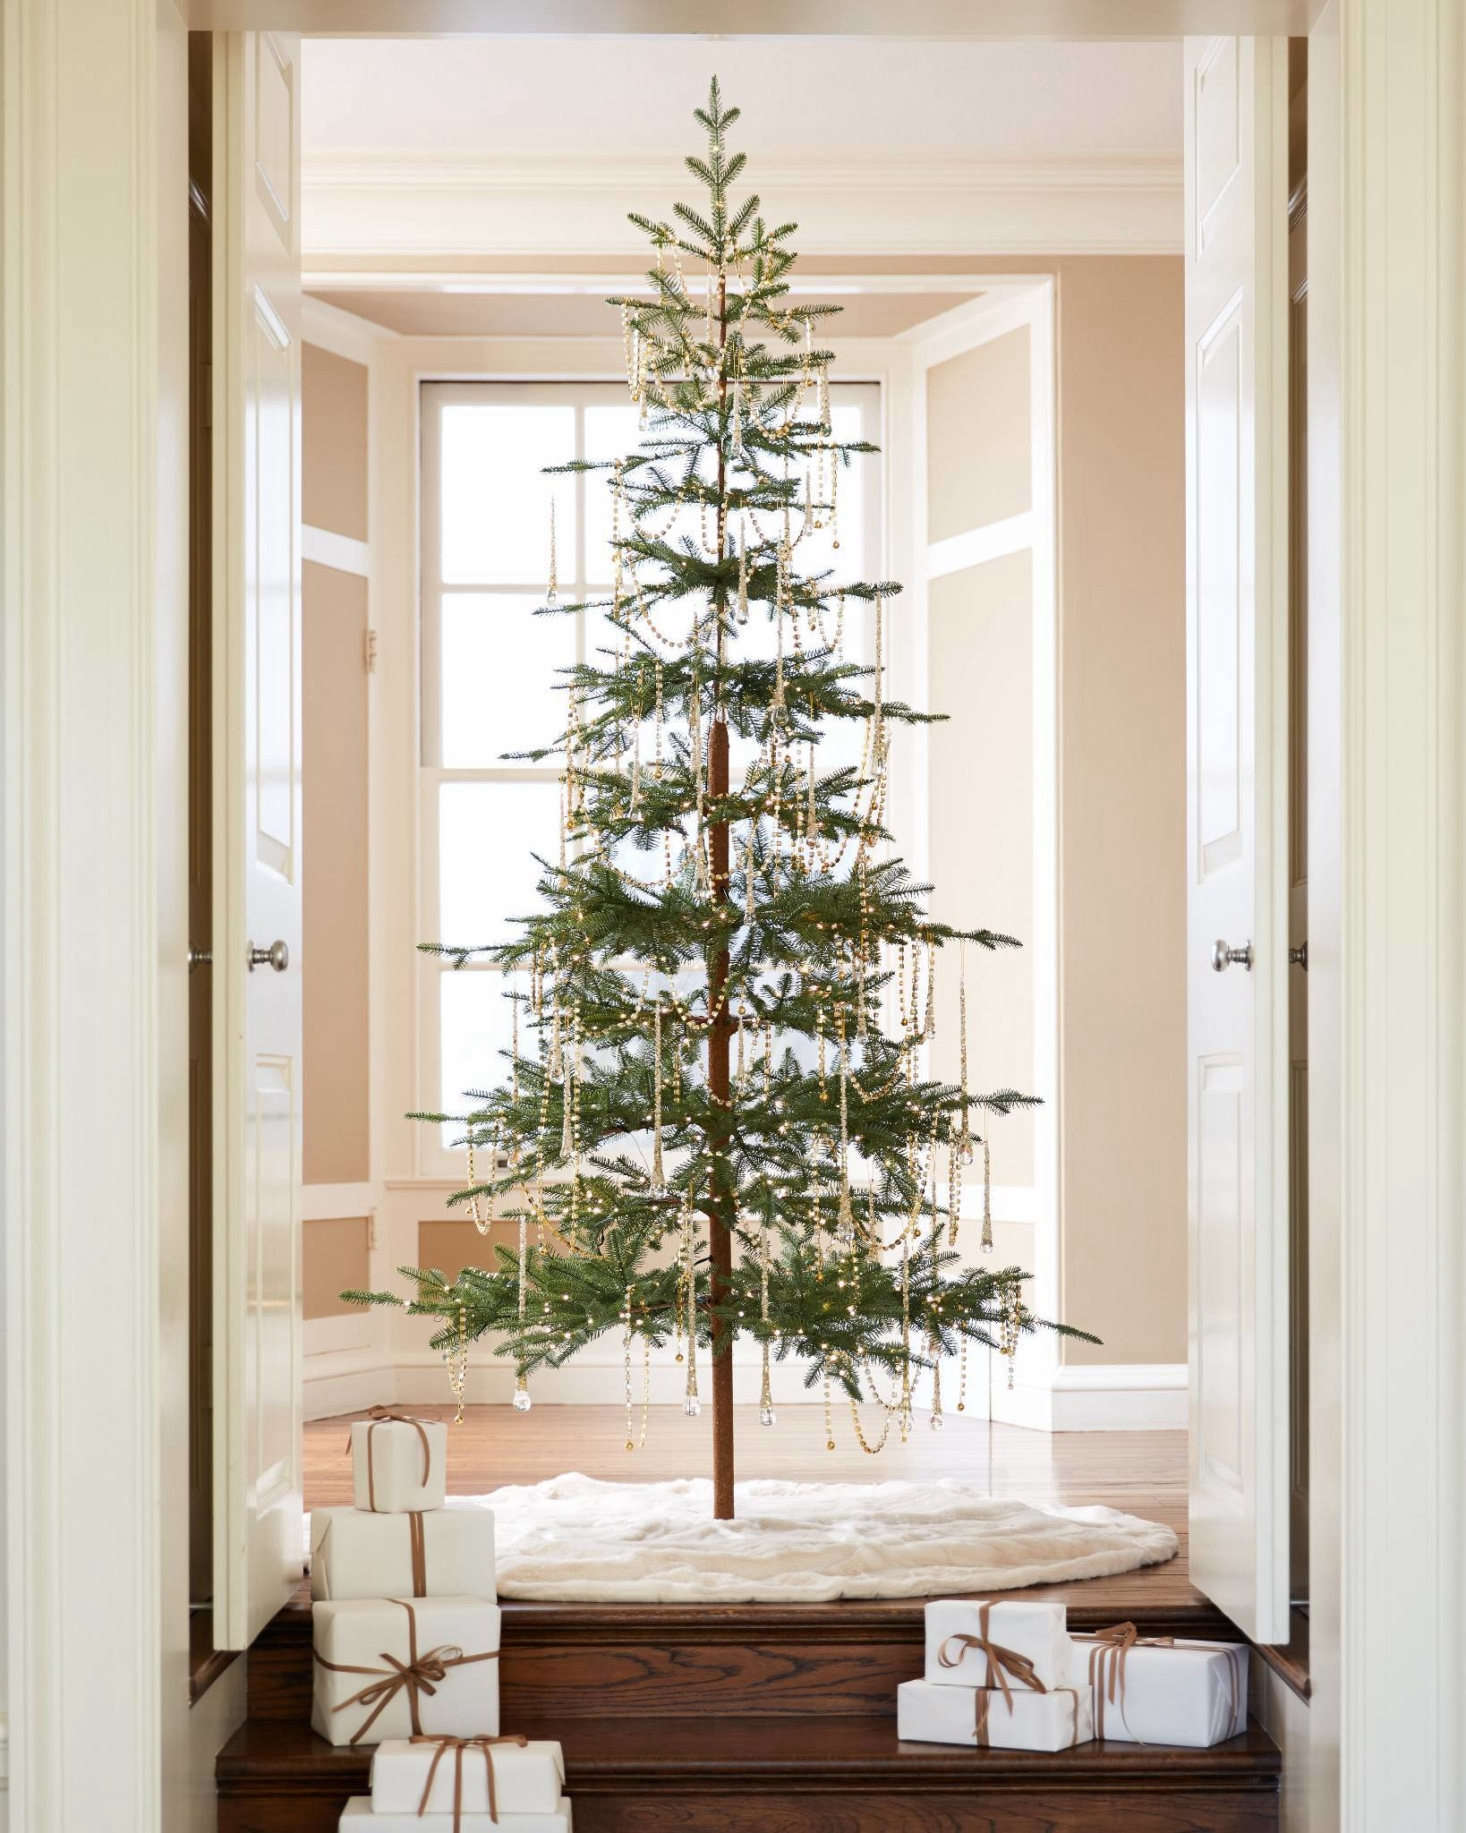 10 Things Nobody Tells You About Christmas Trees - Gardenista